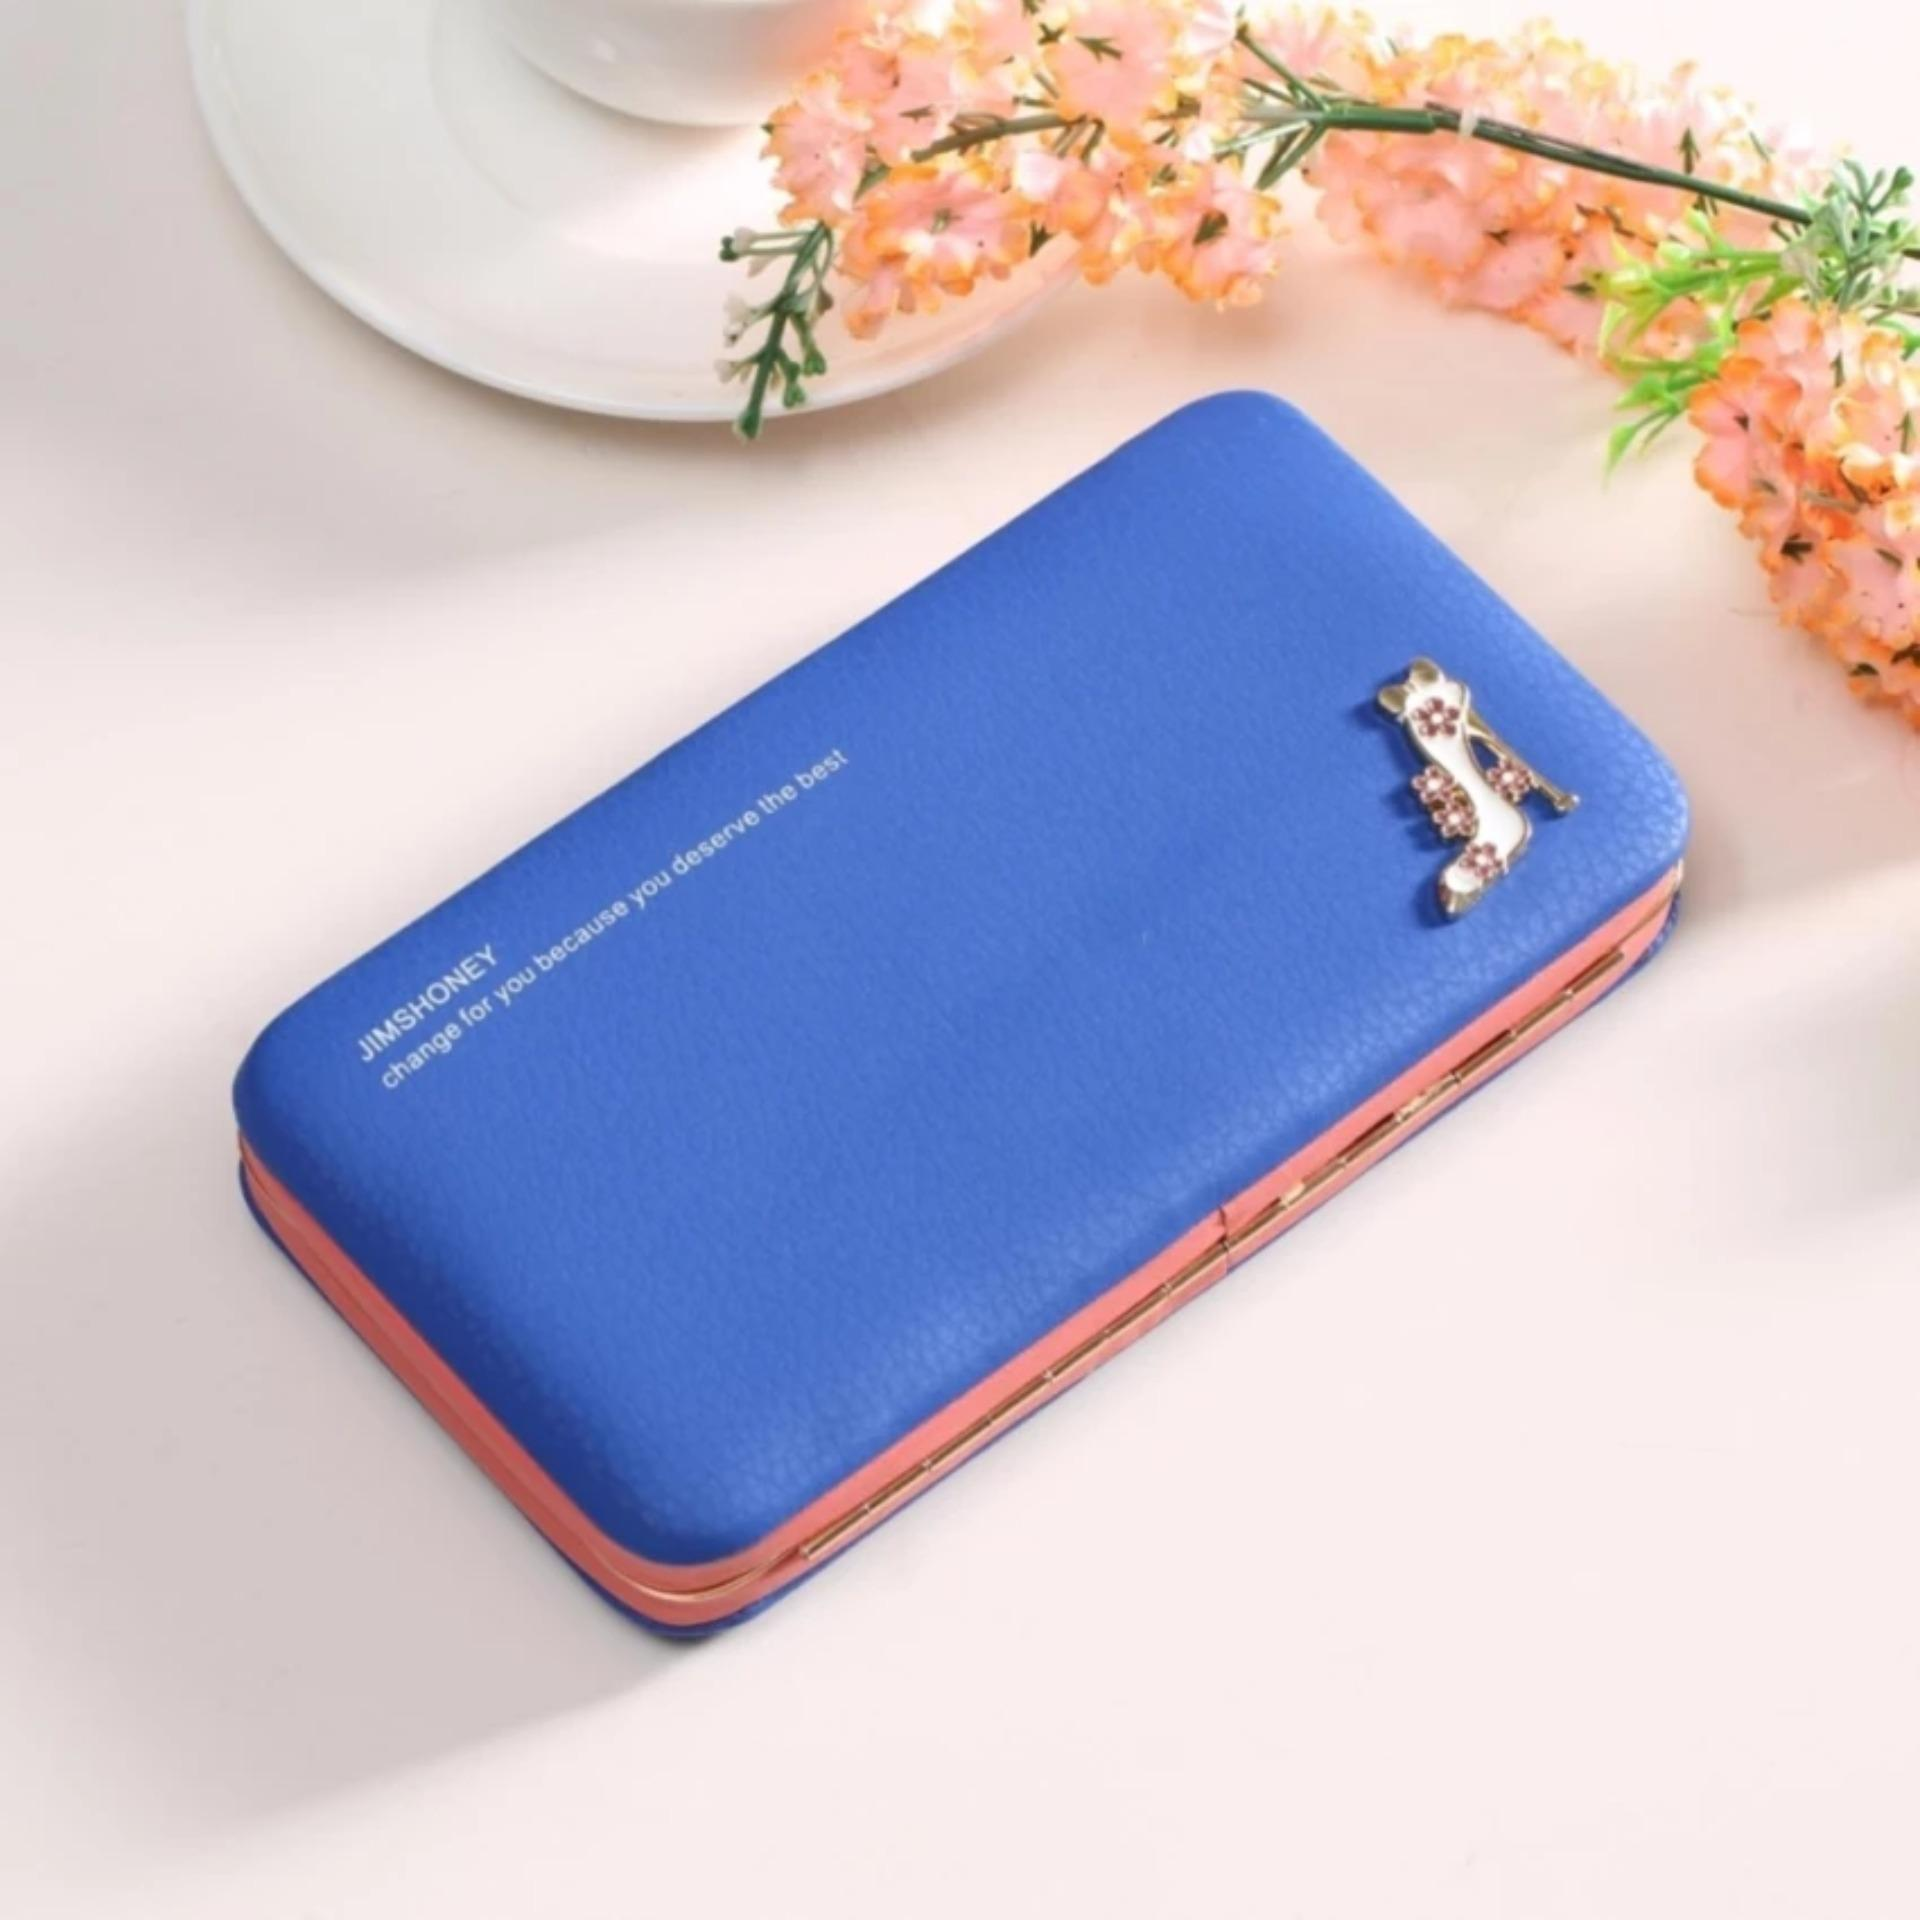 Harga Dompet Hp Organizer Jimshoney Megan Heels Wallet Navy Jimshoney Original